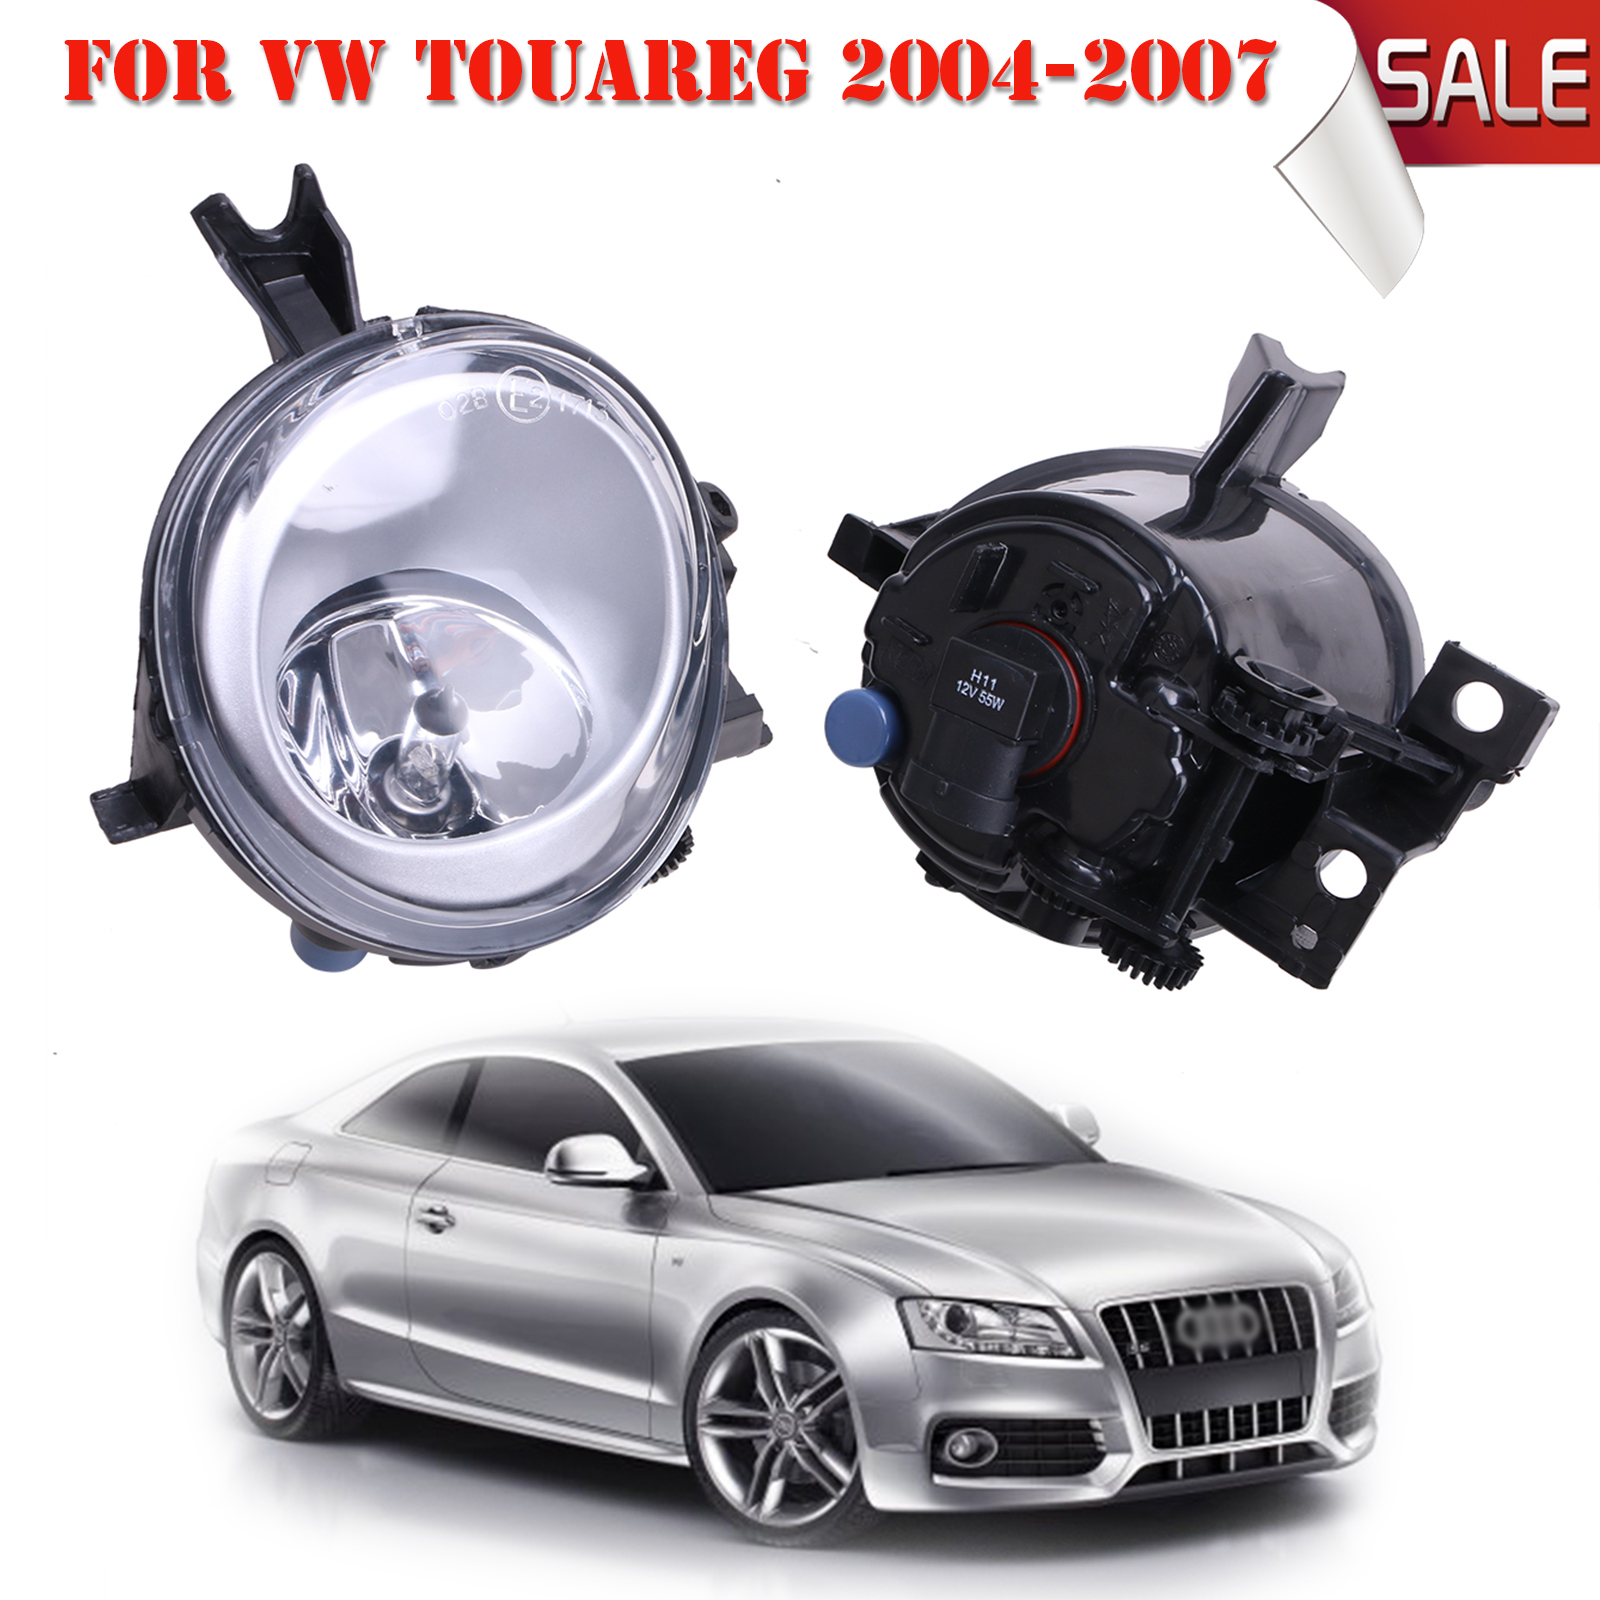 Front Fog Light Lamps with Bulb For VW Touareg TDI V6 V8 Base Sport 2004-2007 Part Number 7L6941699 7L6941700 #P320 free shipping for vw polo 2005 2006 2007 2008 new front left side halogen fog light fog light with bulb